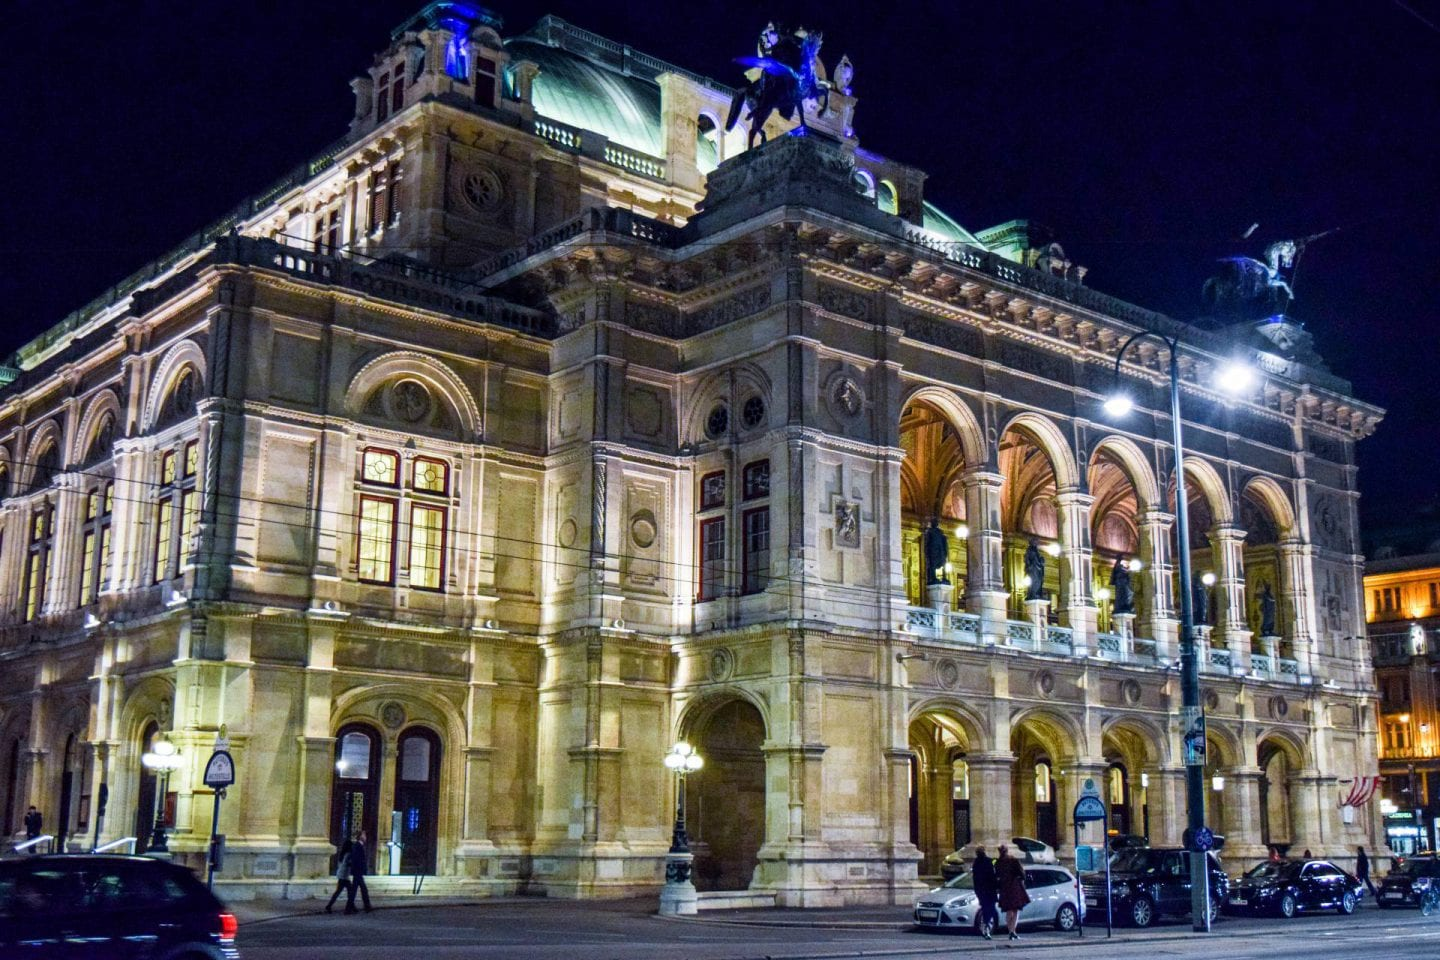 A Viennese Whirl-wind trip: Things to do in Vienna